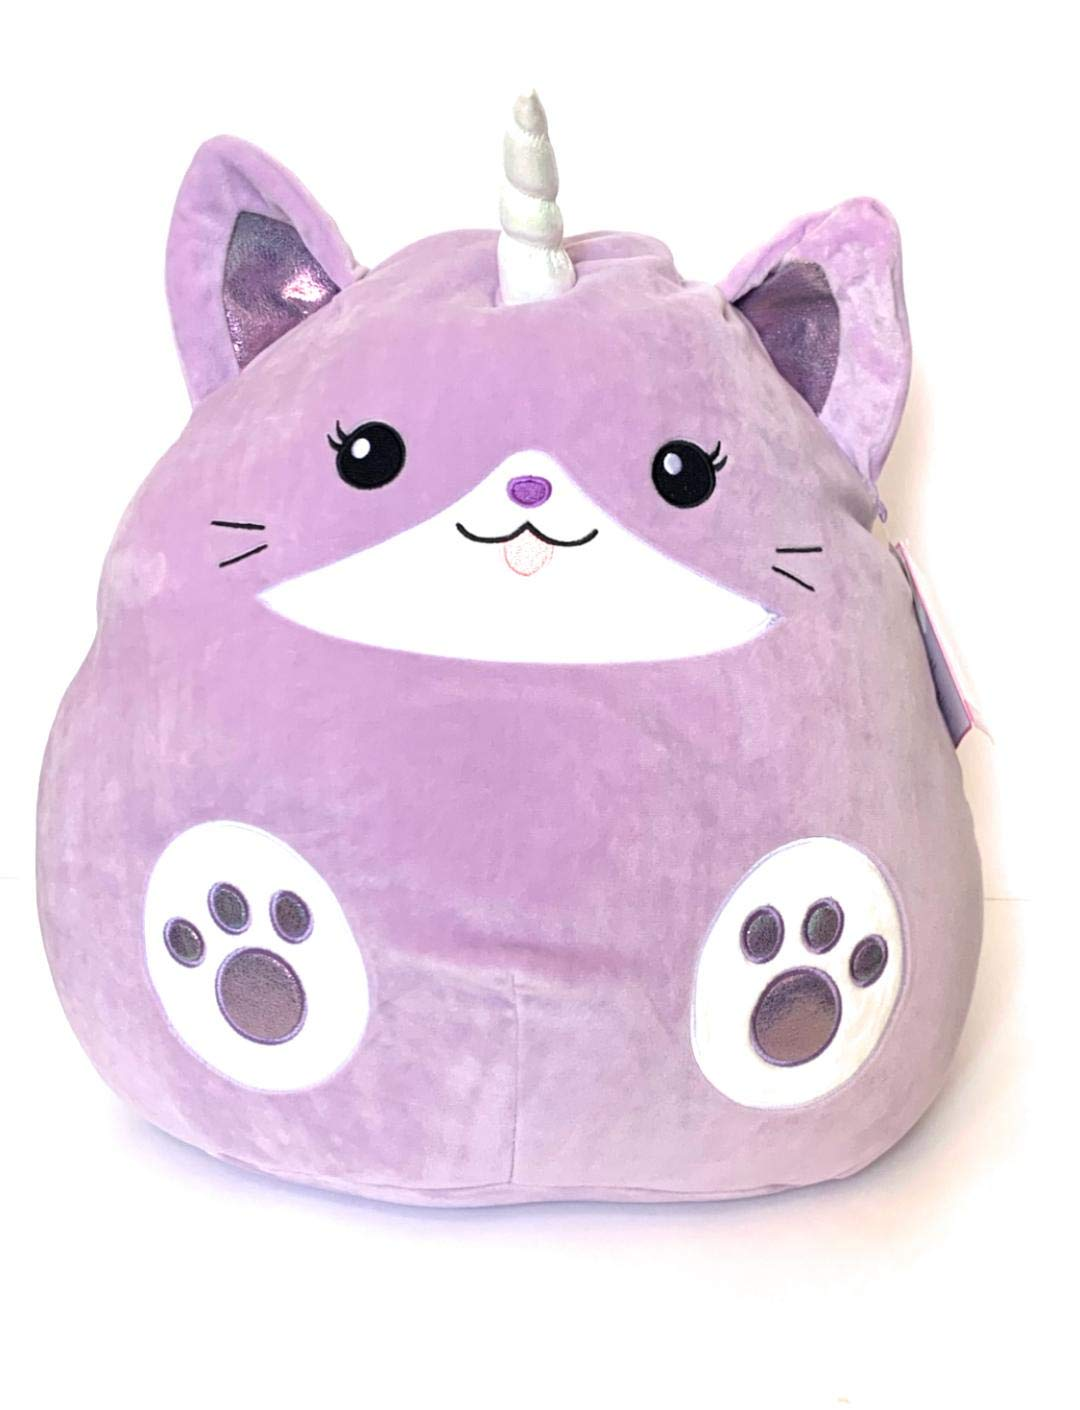 Squishmallows 16'' Justice Exclusive Watermelon Scented Purple Tibby The Caticorn Cat Super Soft Plush Pillow Stuffed Animal